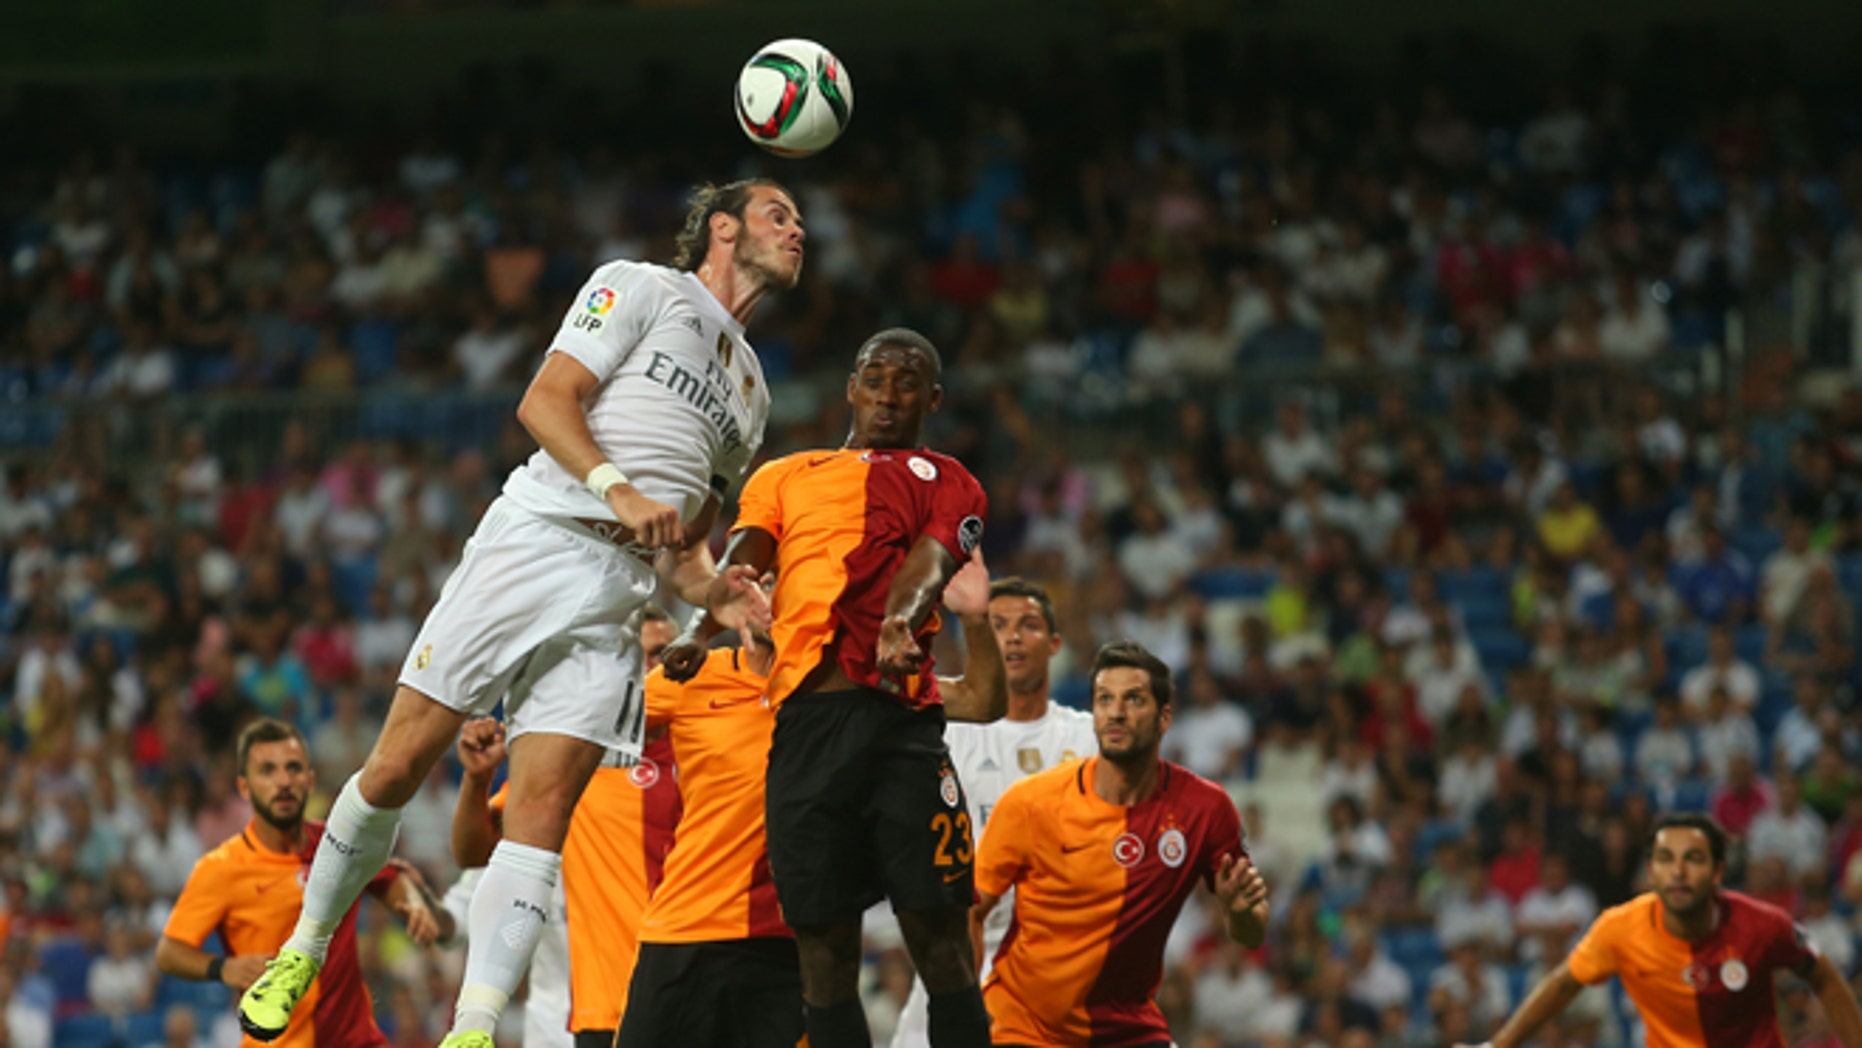 Real Madrid's Gareth Bale, top left, goes for a header with Galatasaray's Lionel Carole, top right, during the Santiago Bernabeu trophy soccer match between Real Madrid and Galatasaray at the Santiago Bernabeu stadium, in Madrid, Spain, Tuesday, Aug. 18, 2015. (AP Photo/Francisco Seco)